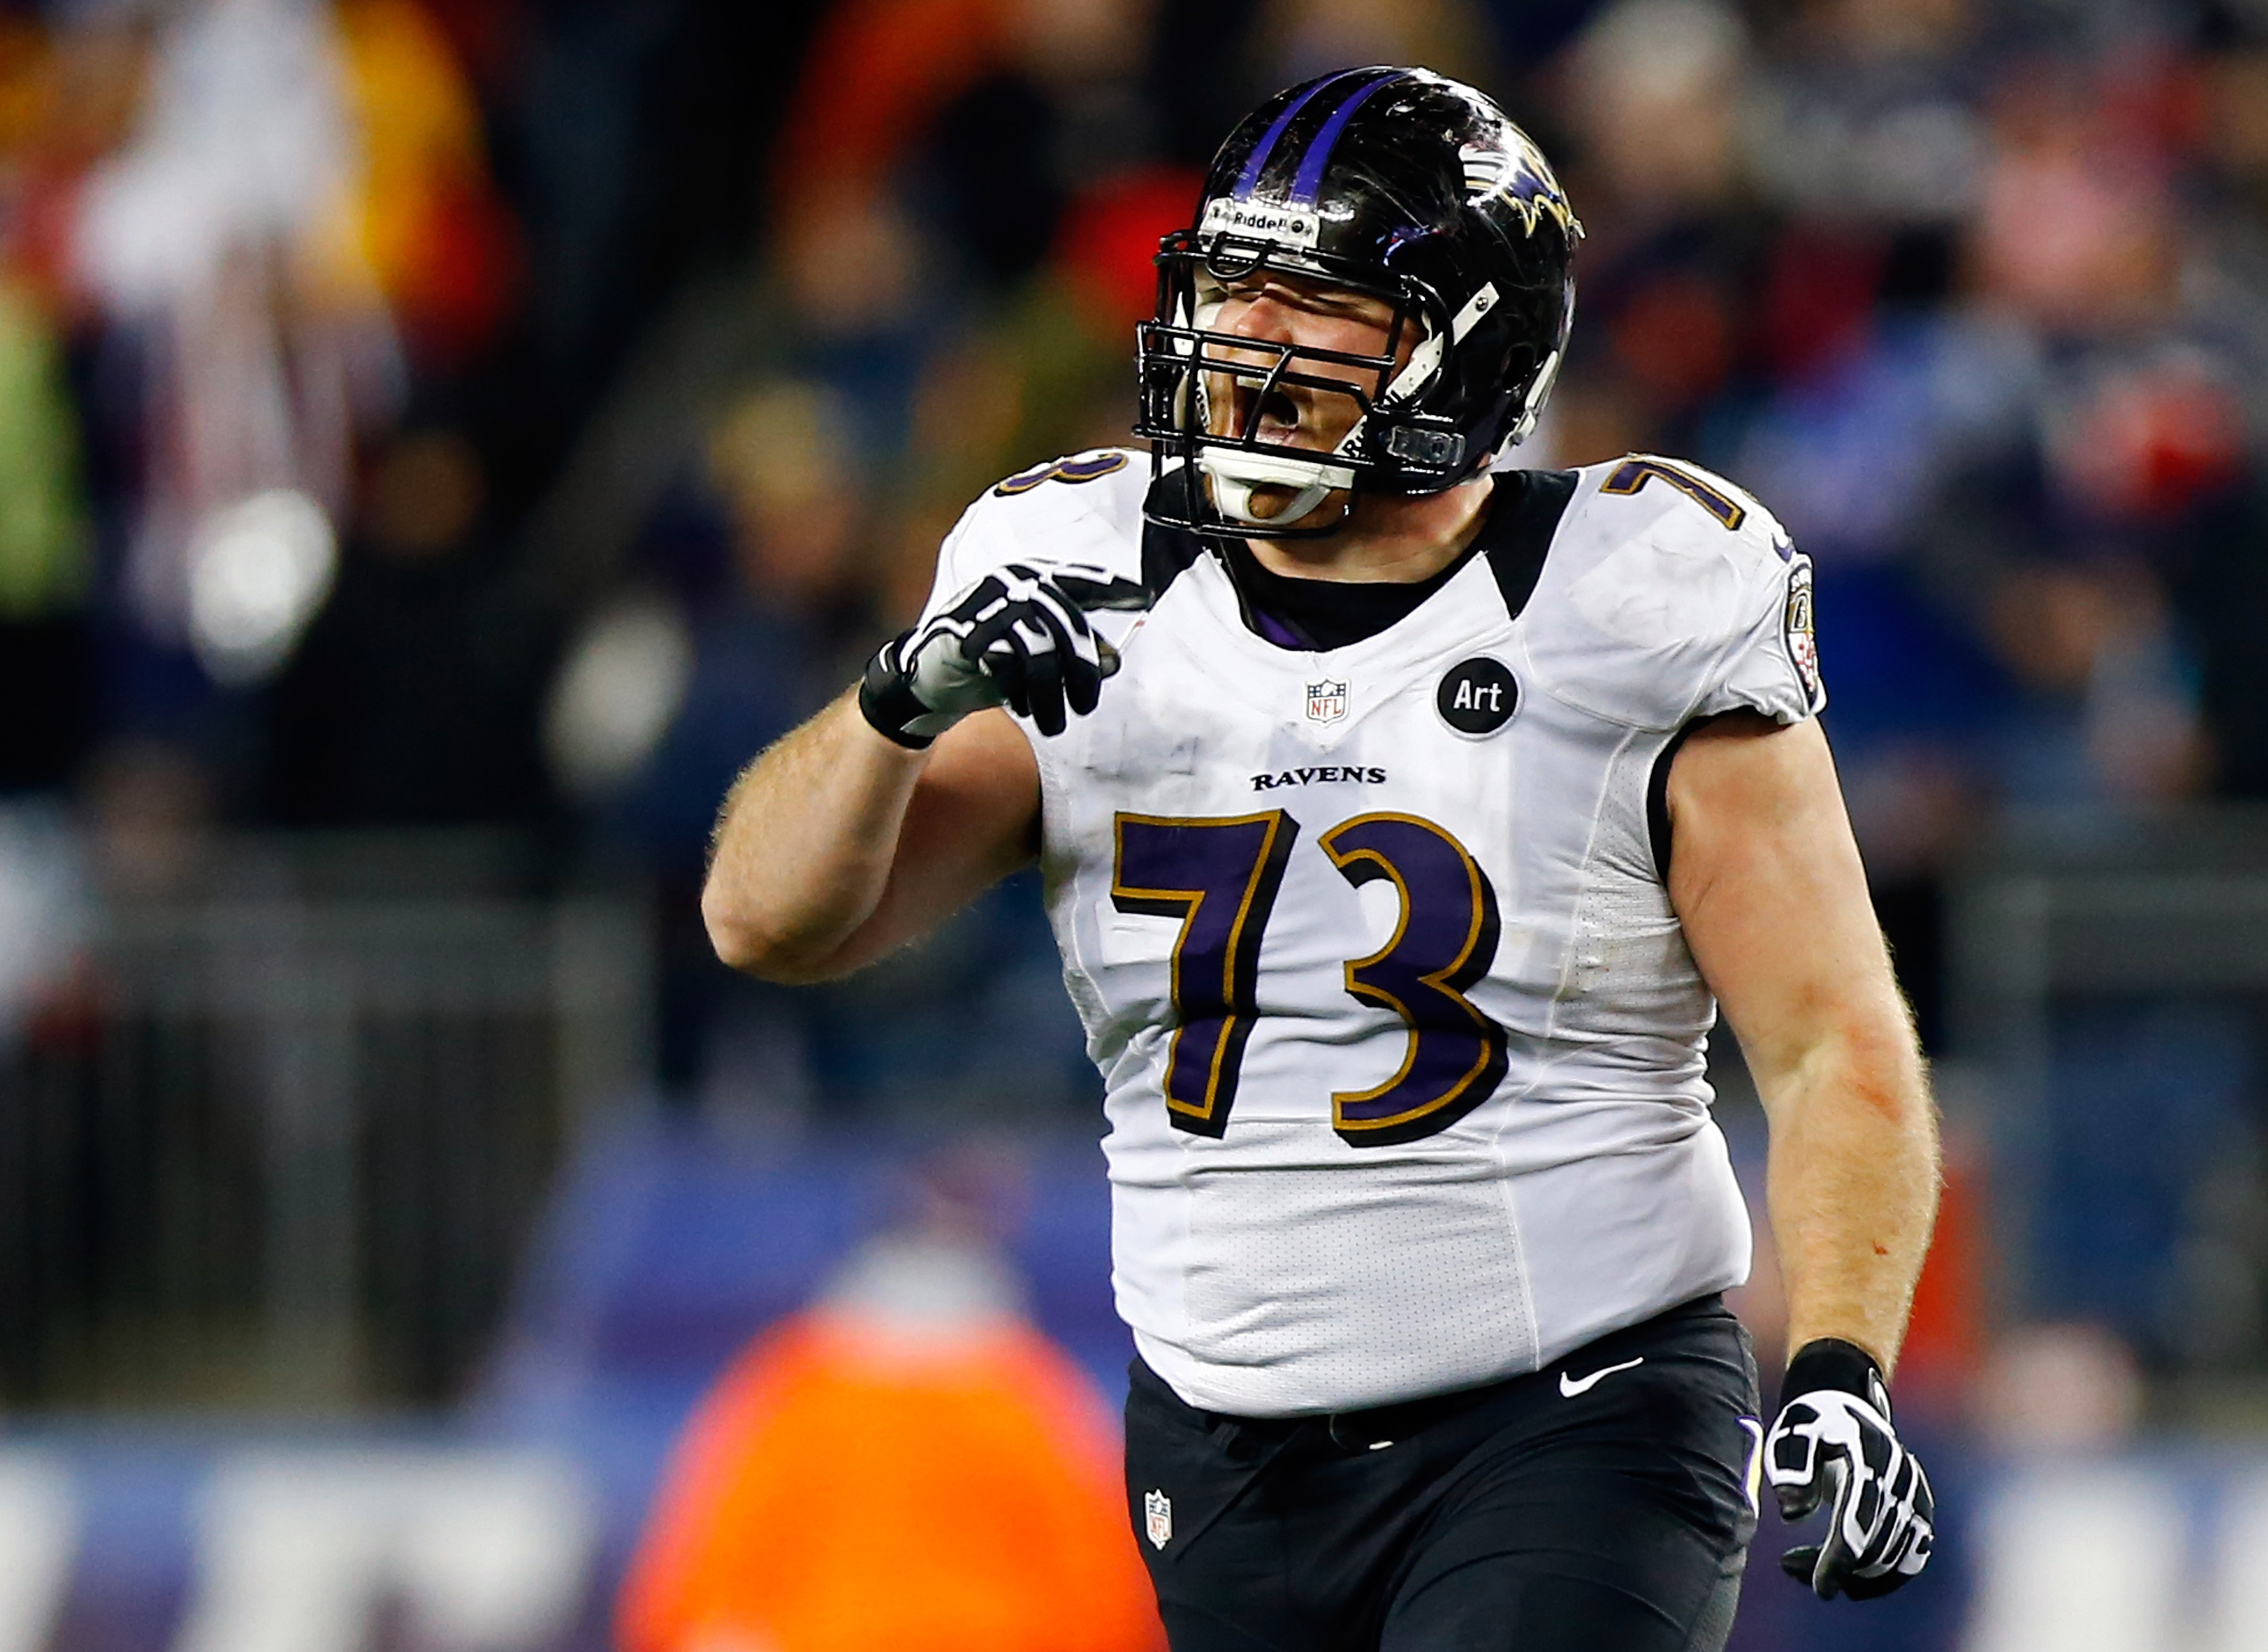 Why Ravens resigning Marshal Yanda is an awesome move